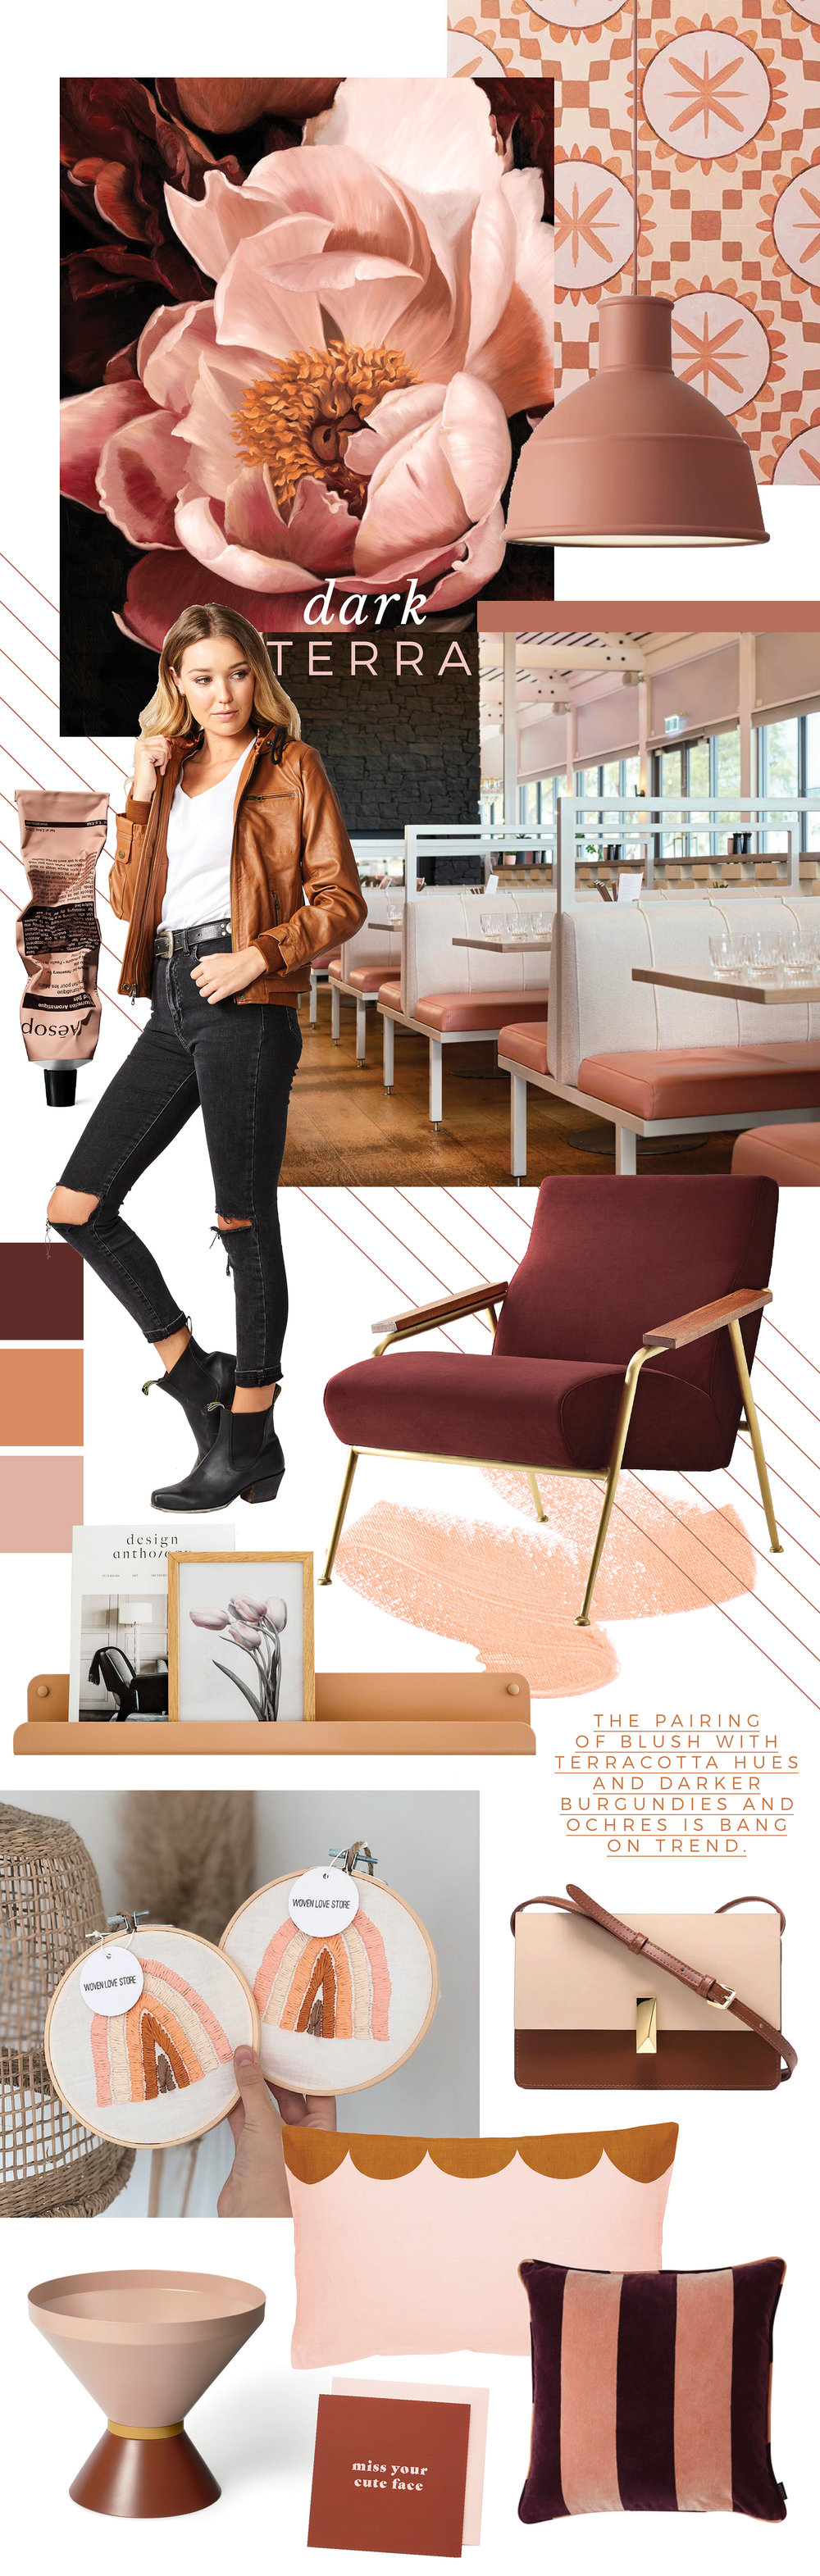 adore_home_blog_colour_trend_dark_terra_terracotta-blush_pink.jpg